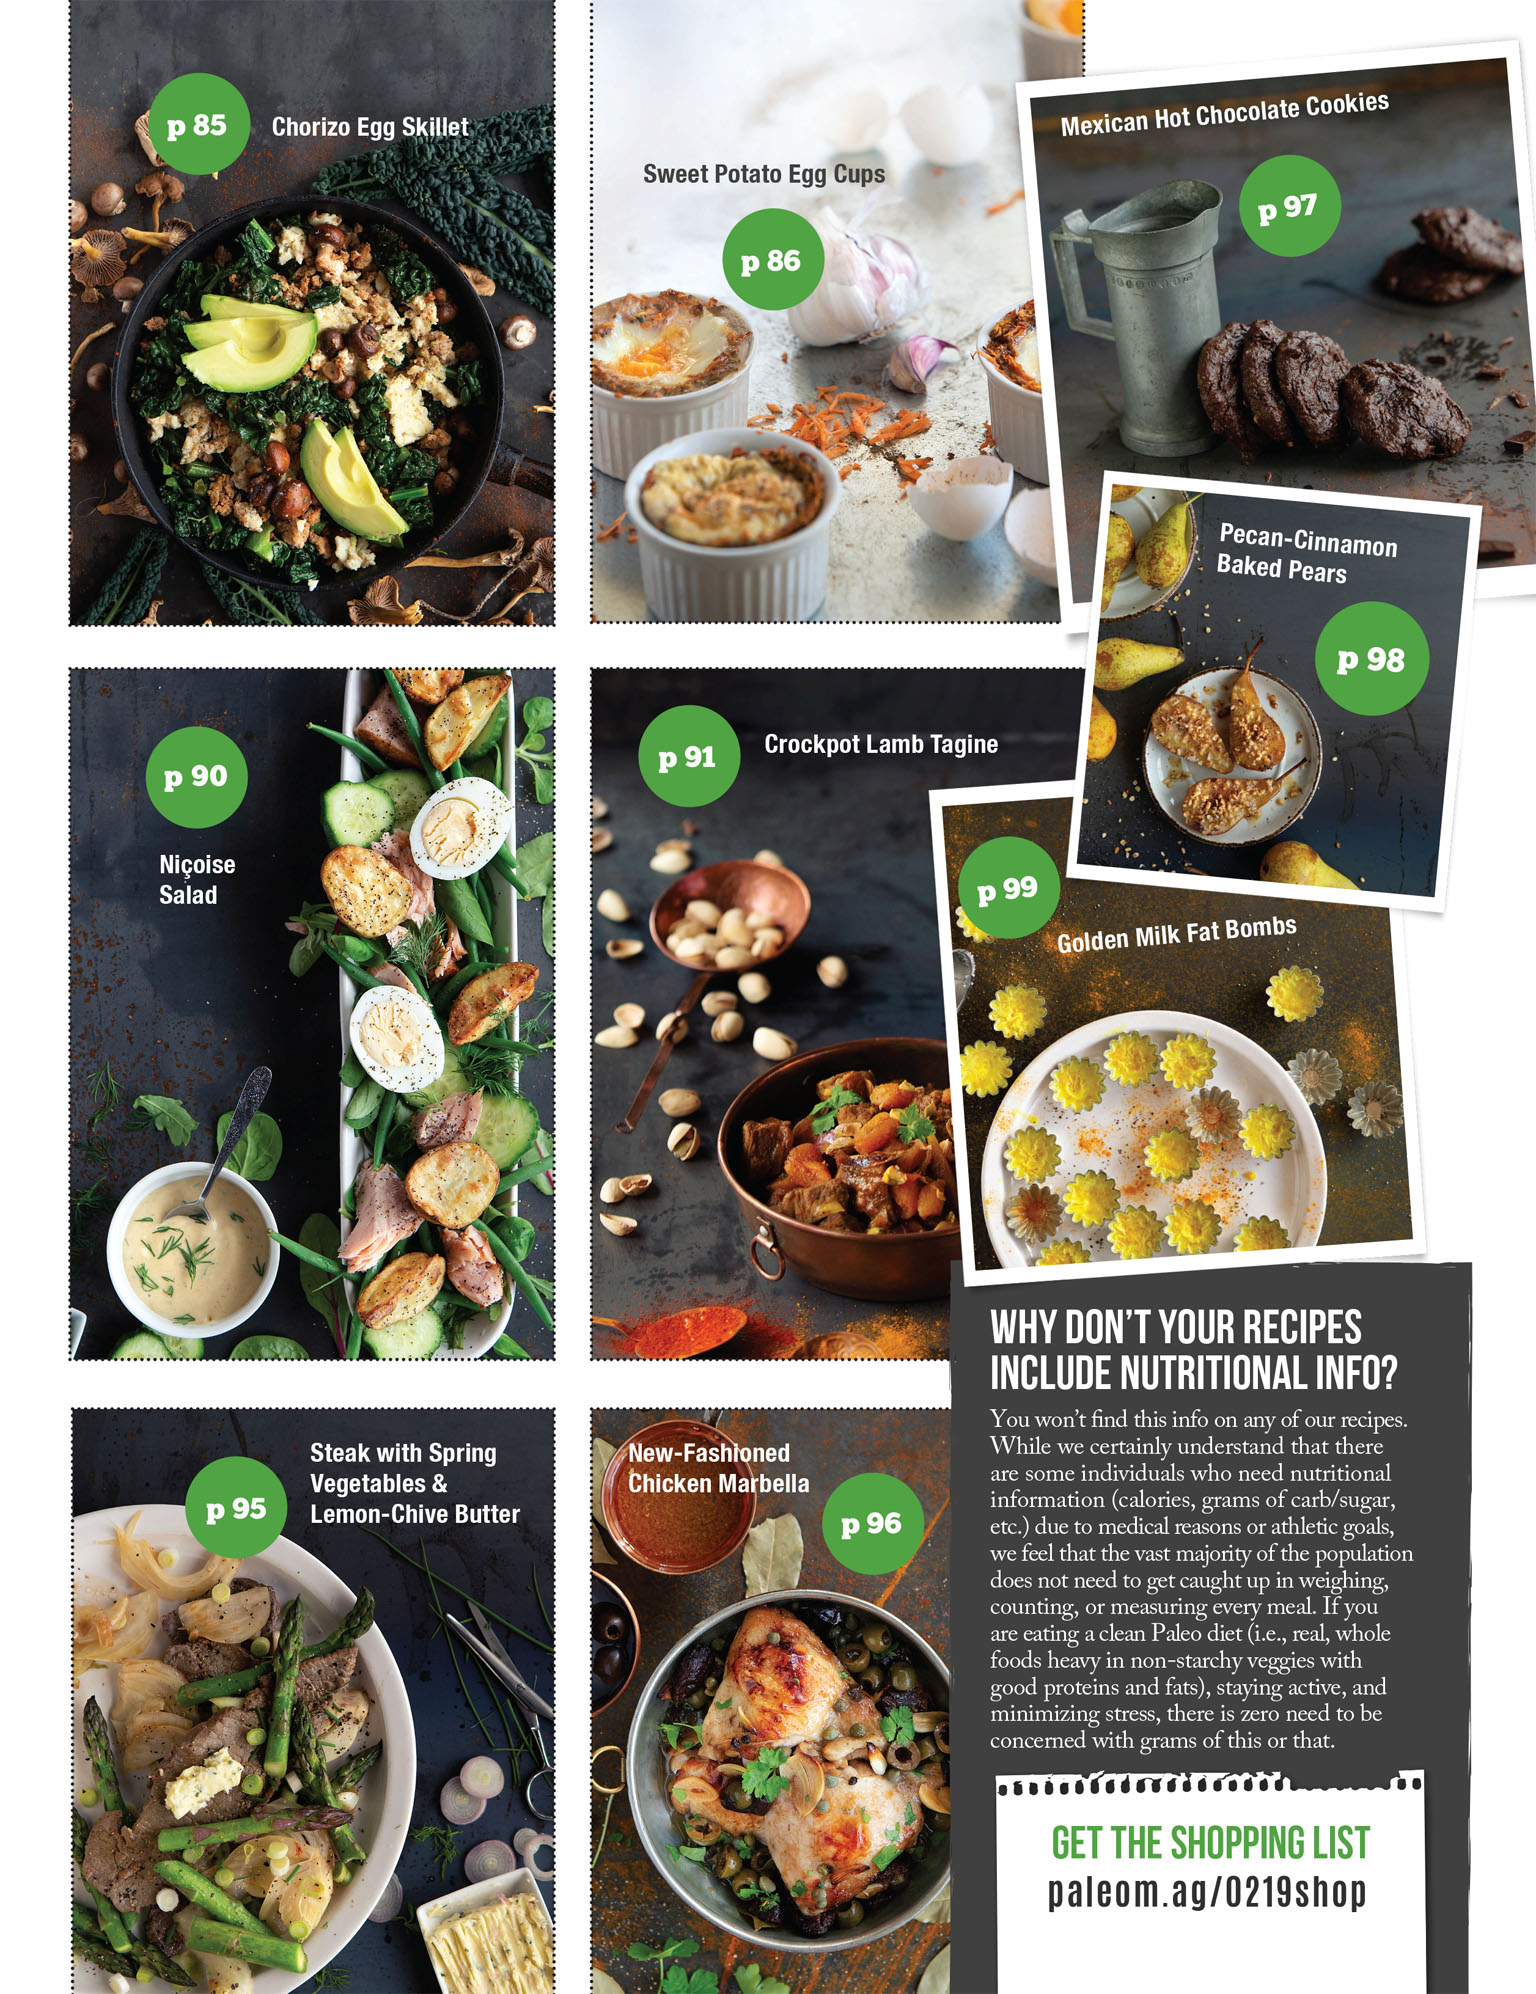 Paleo Magazine grid of Recipes in February & March